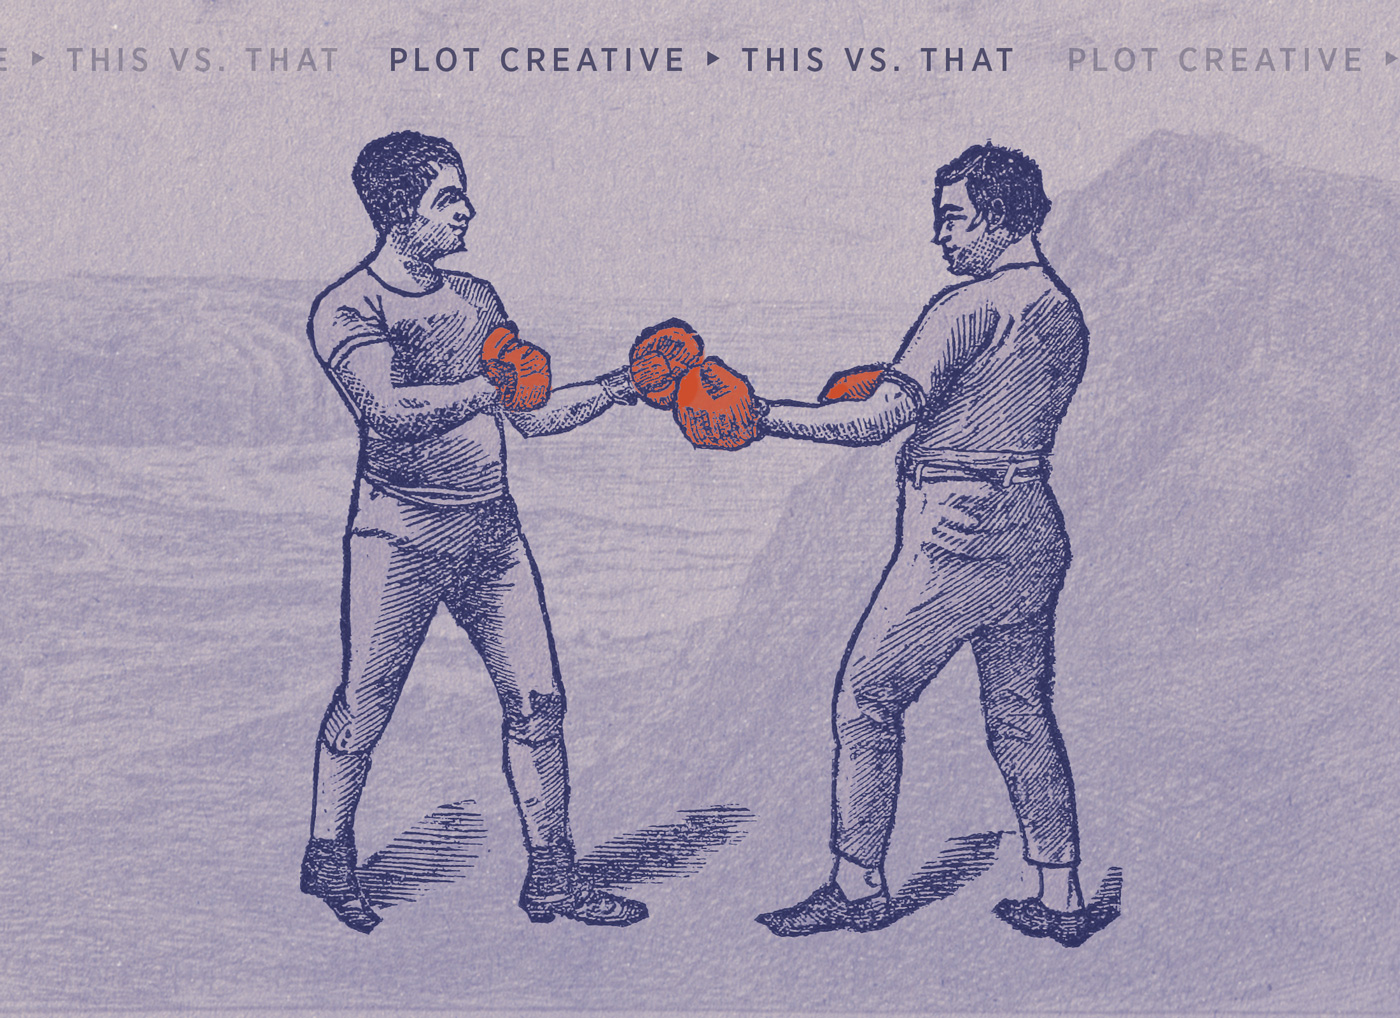 Plot: This vs. That